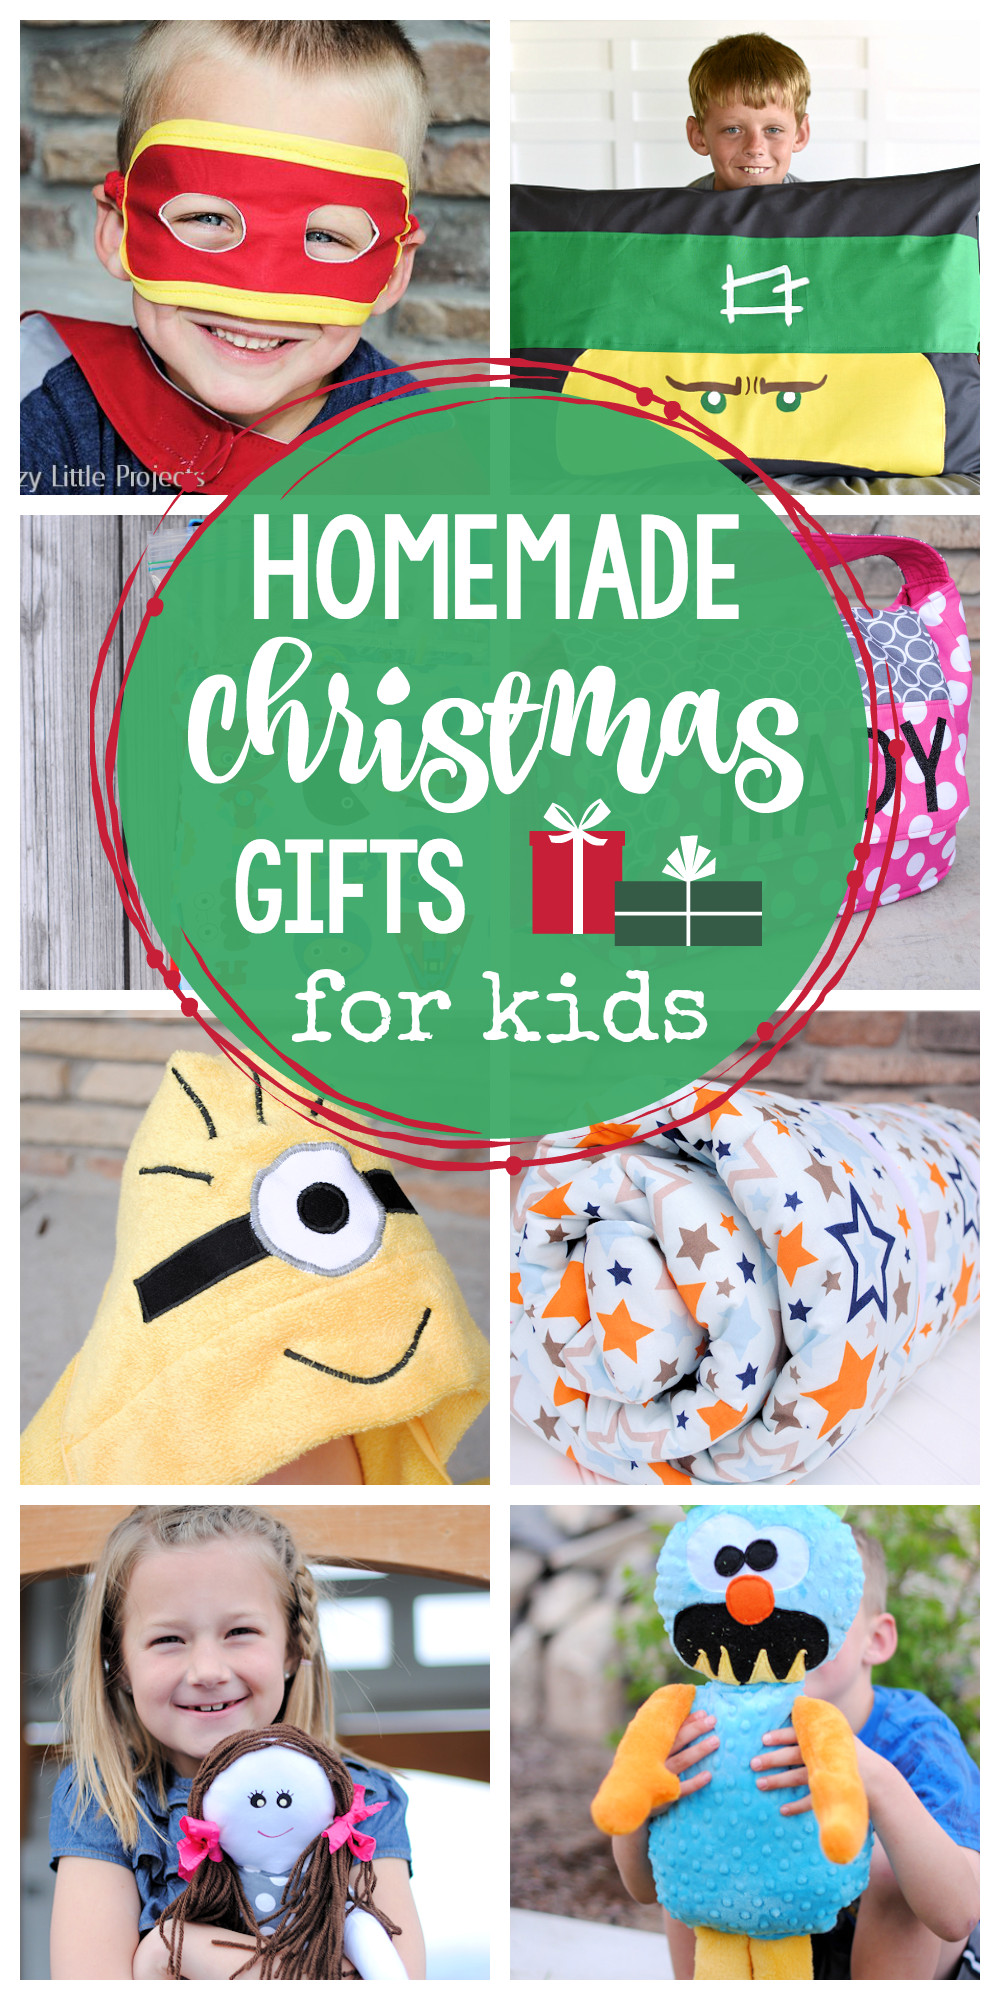 Fun Gift Ideas For Kids  25 Homemade Christmas Gifts for Kids Crazy Little Projects